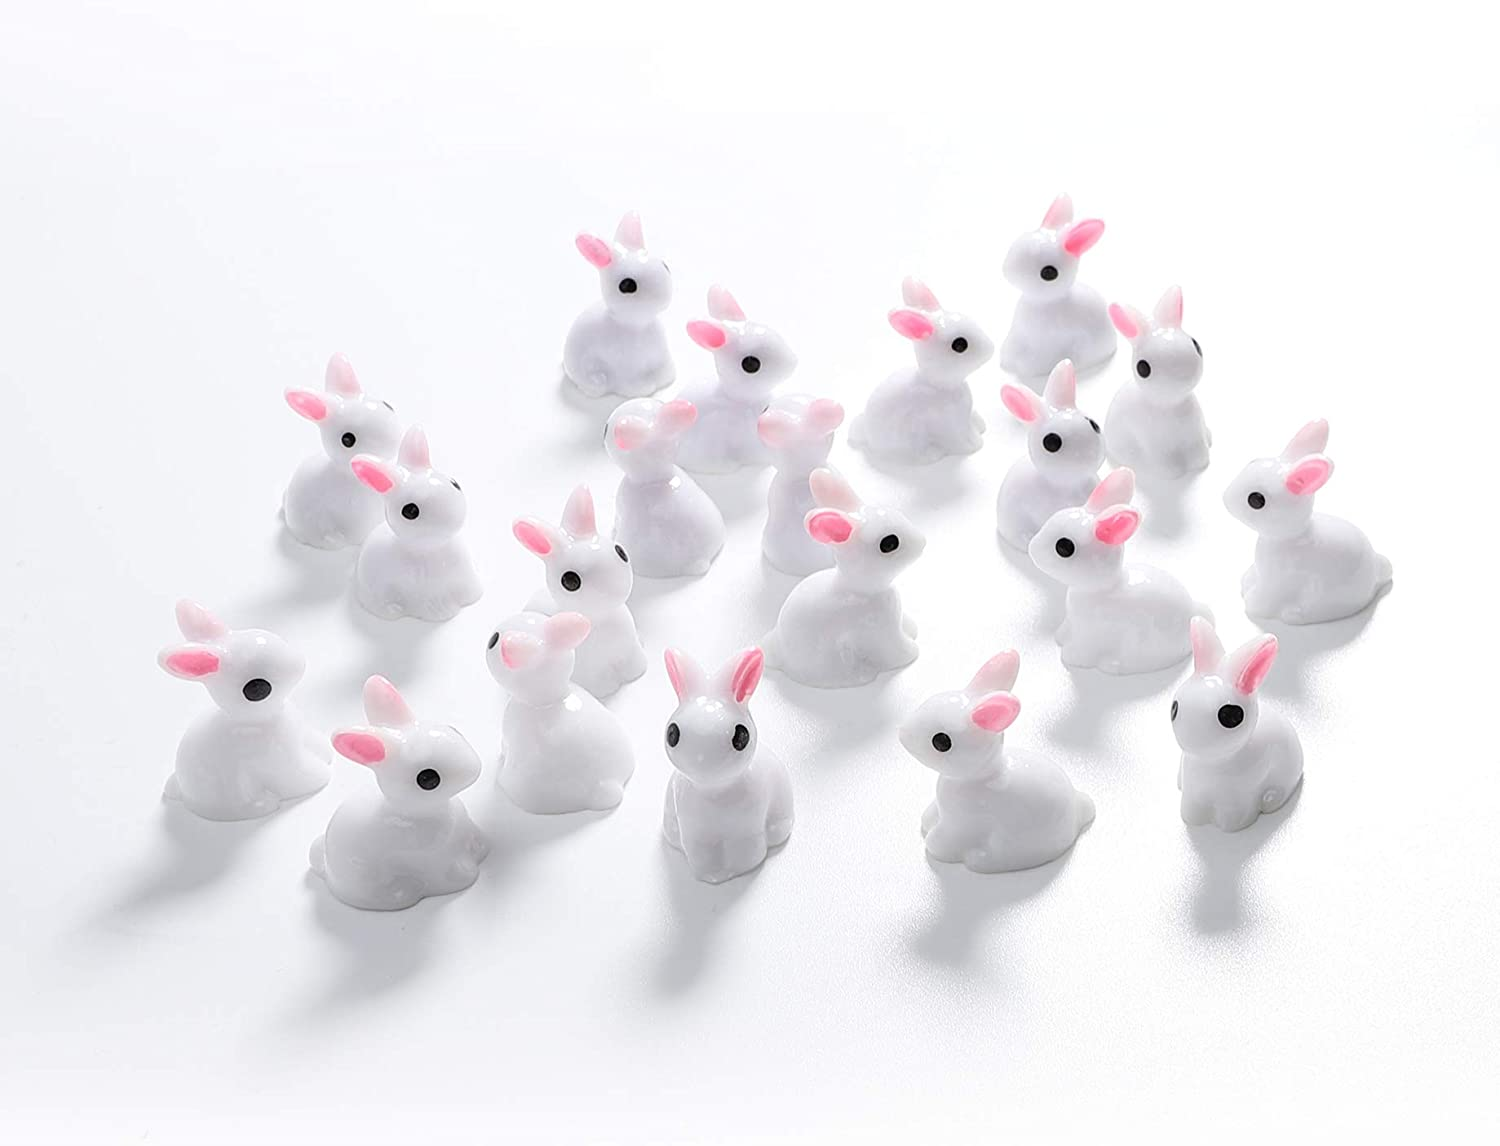 TCJJ 60 Pieces Easter Mini Bunny Figurines Fairy Garden Animals Miniature Ornaments for Fairy Garden Flower Pot Cake Topper Home Easter Decoration (Pack of 60)